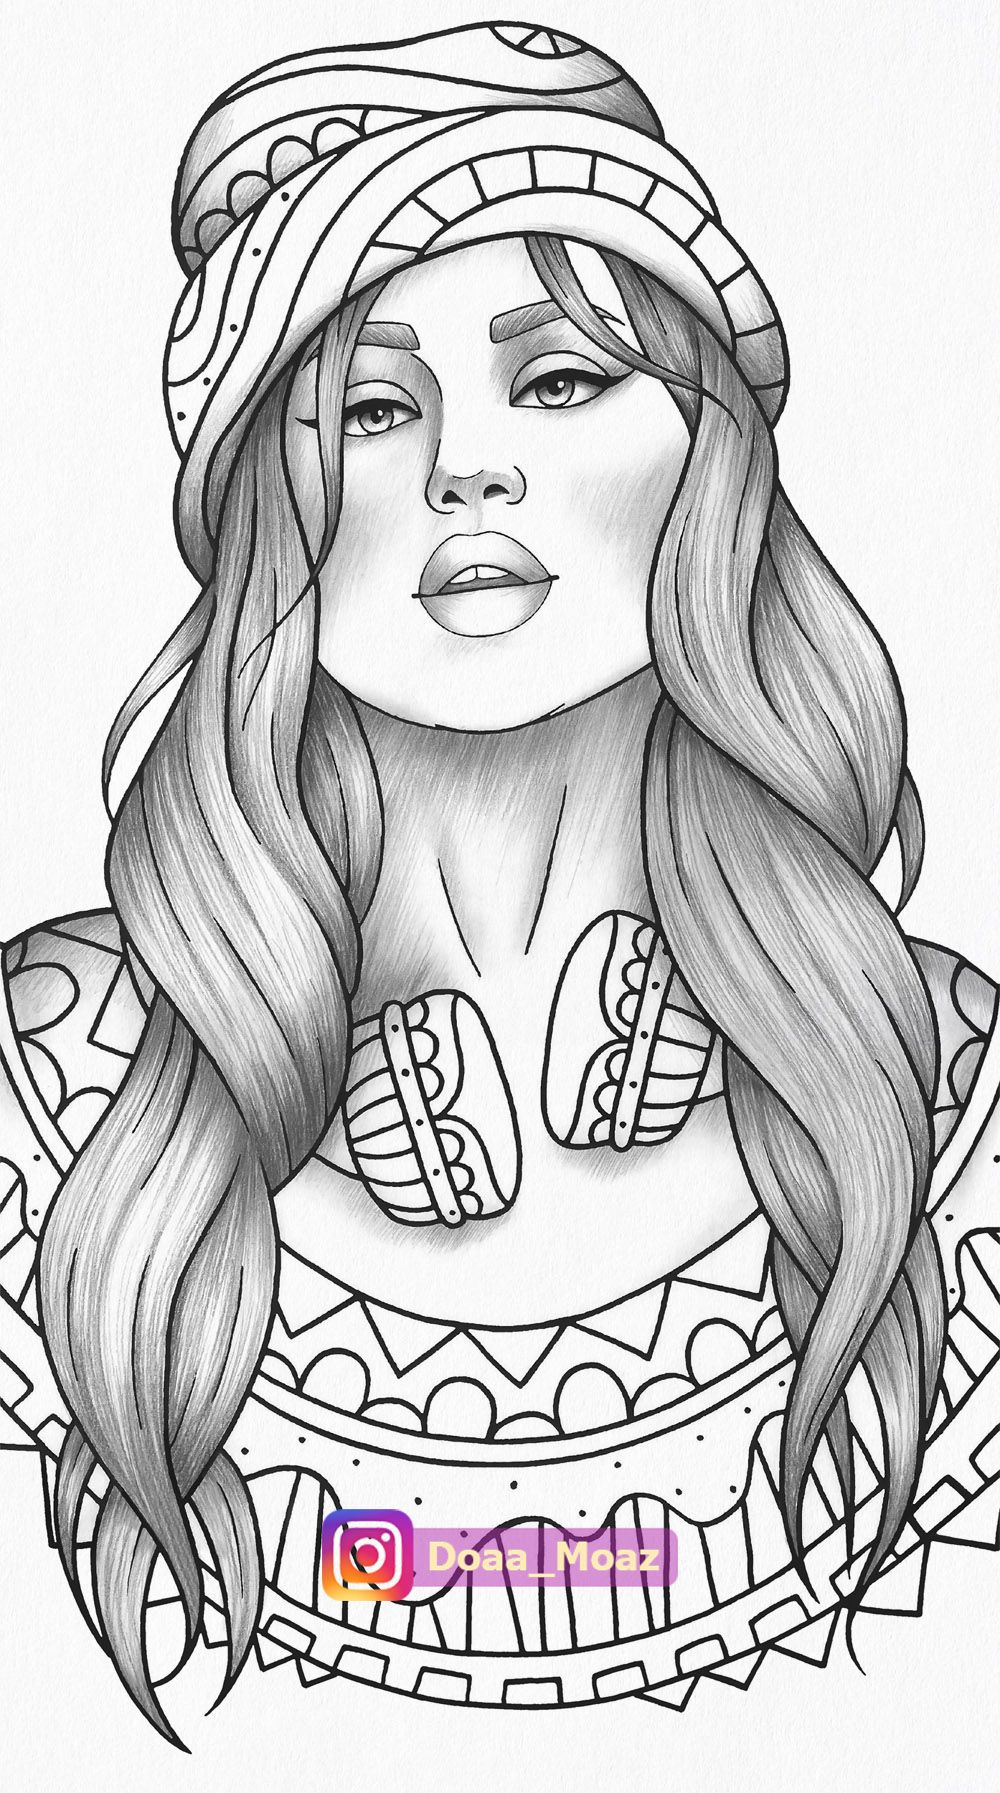 Adult Coloring Page Girl Portrait With Headphones And Knitted Cap